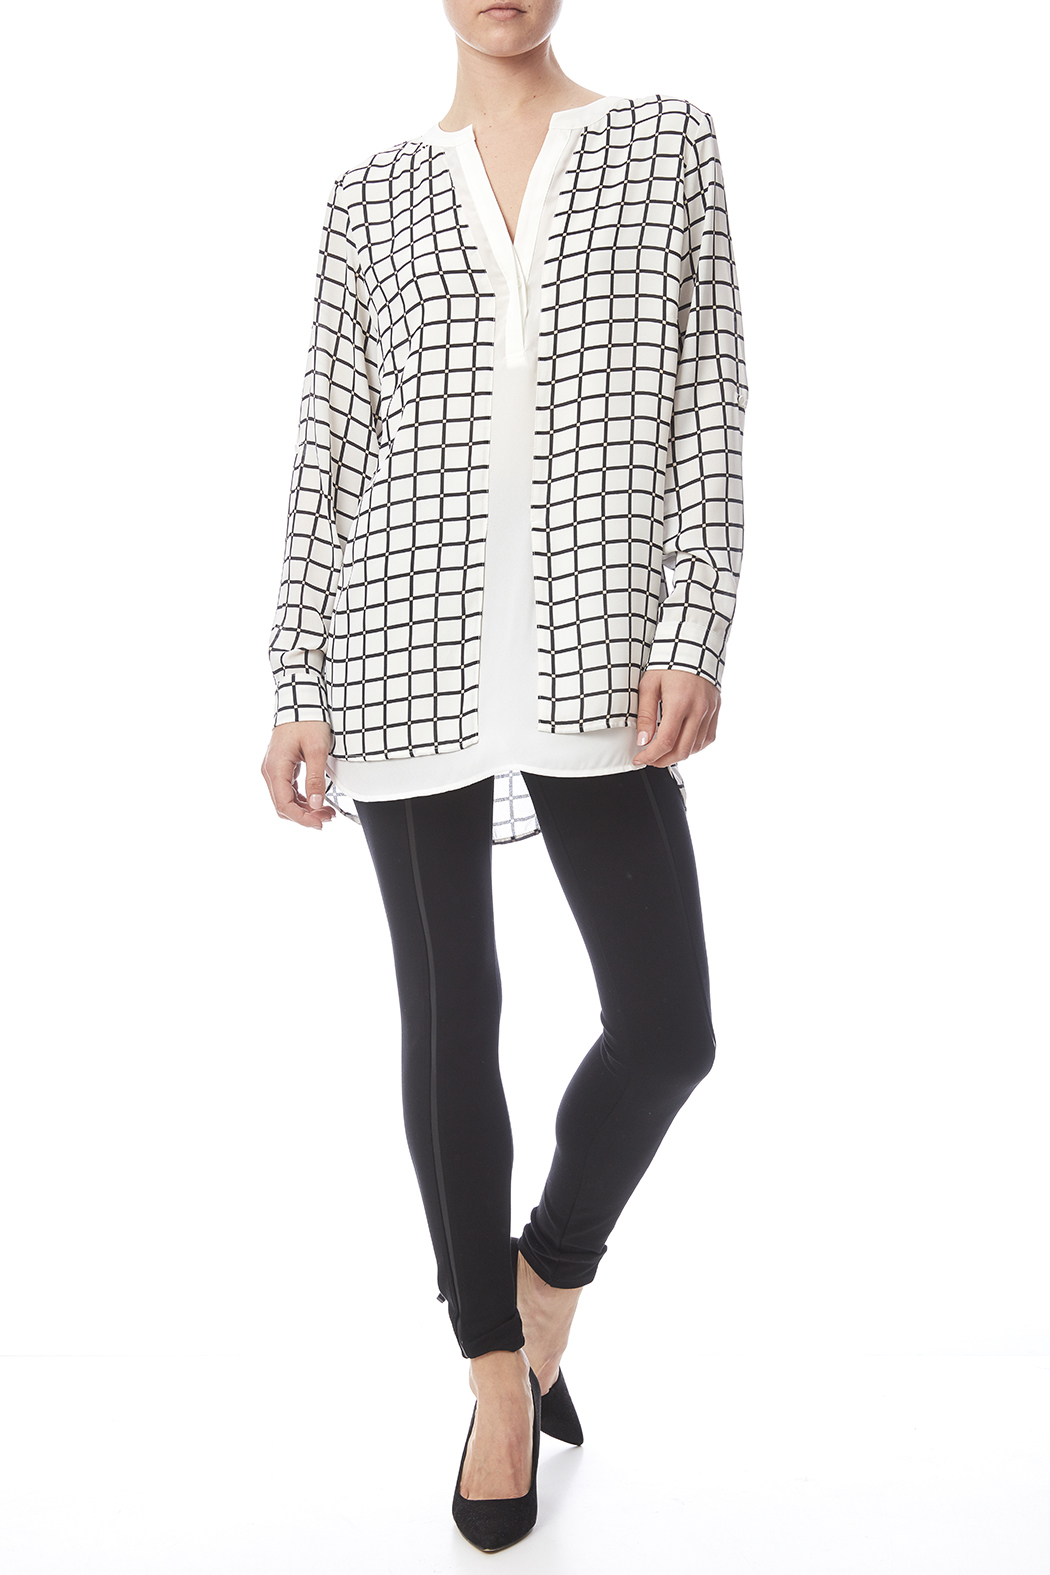 Renuar White Check Blouse - Front Full Image